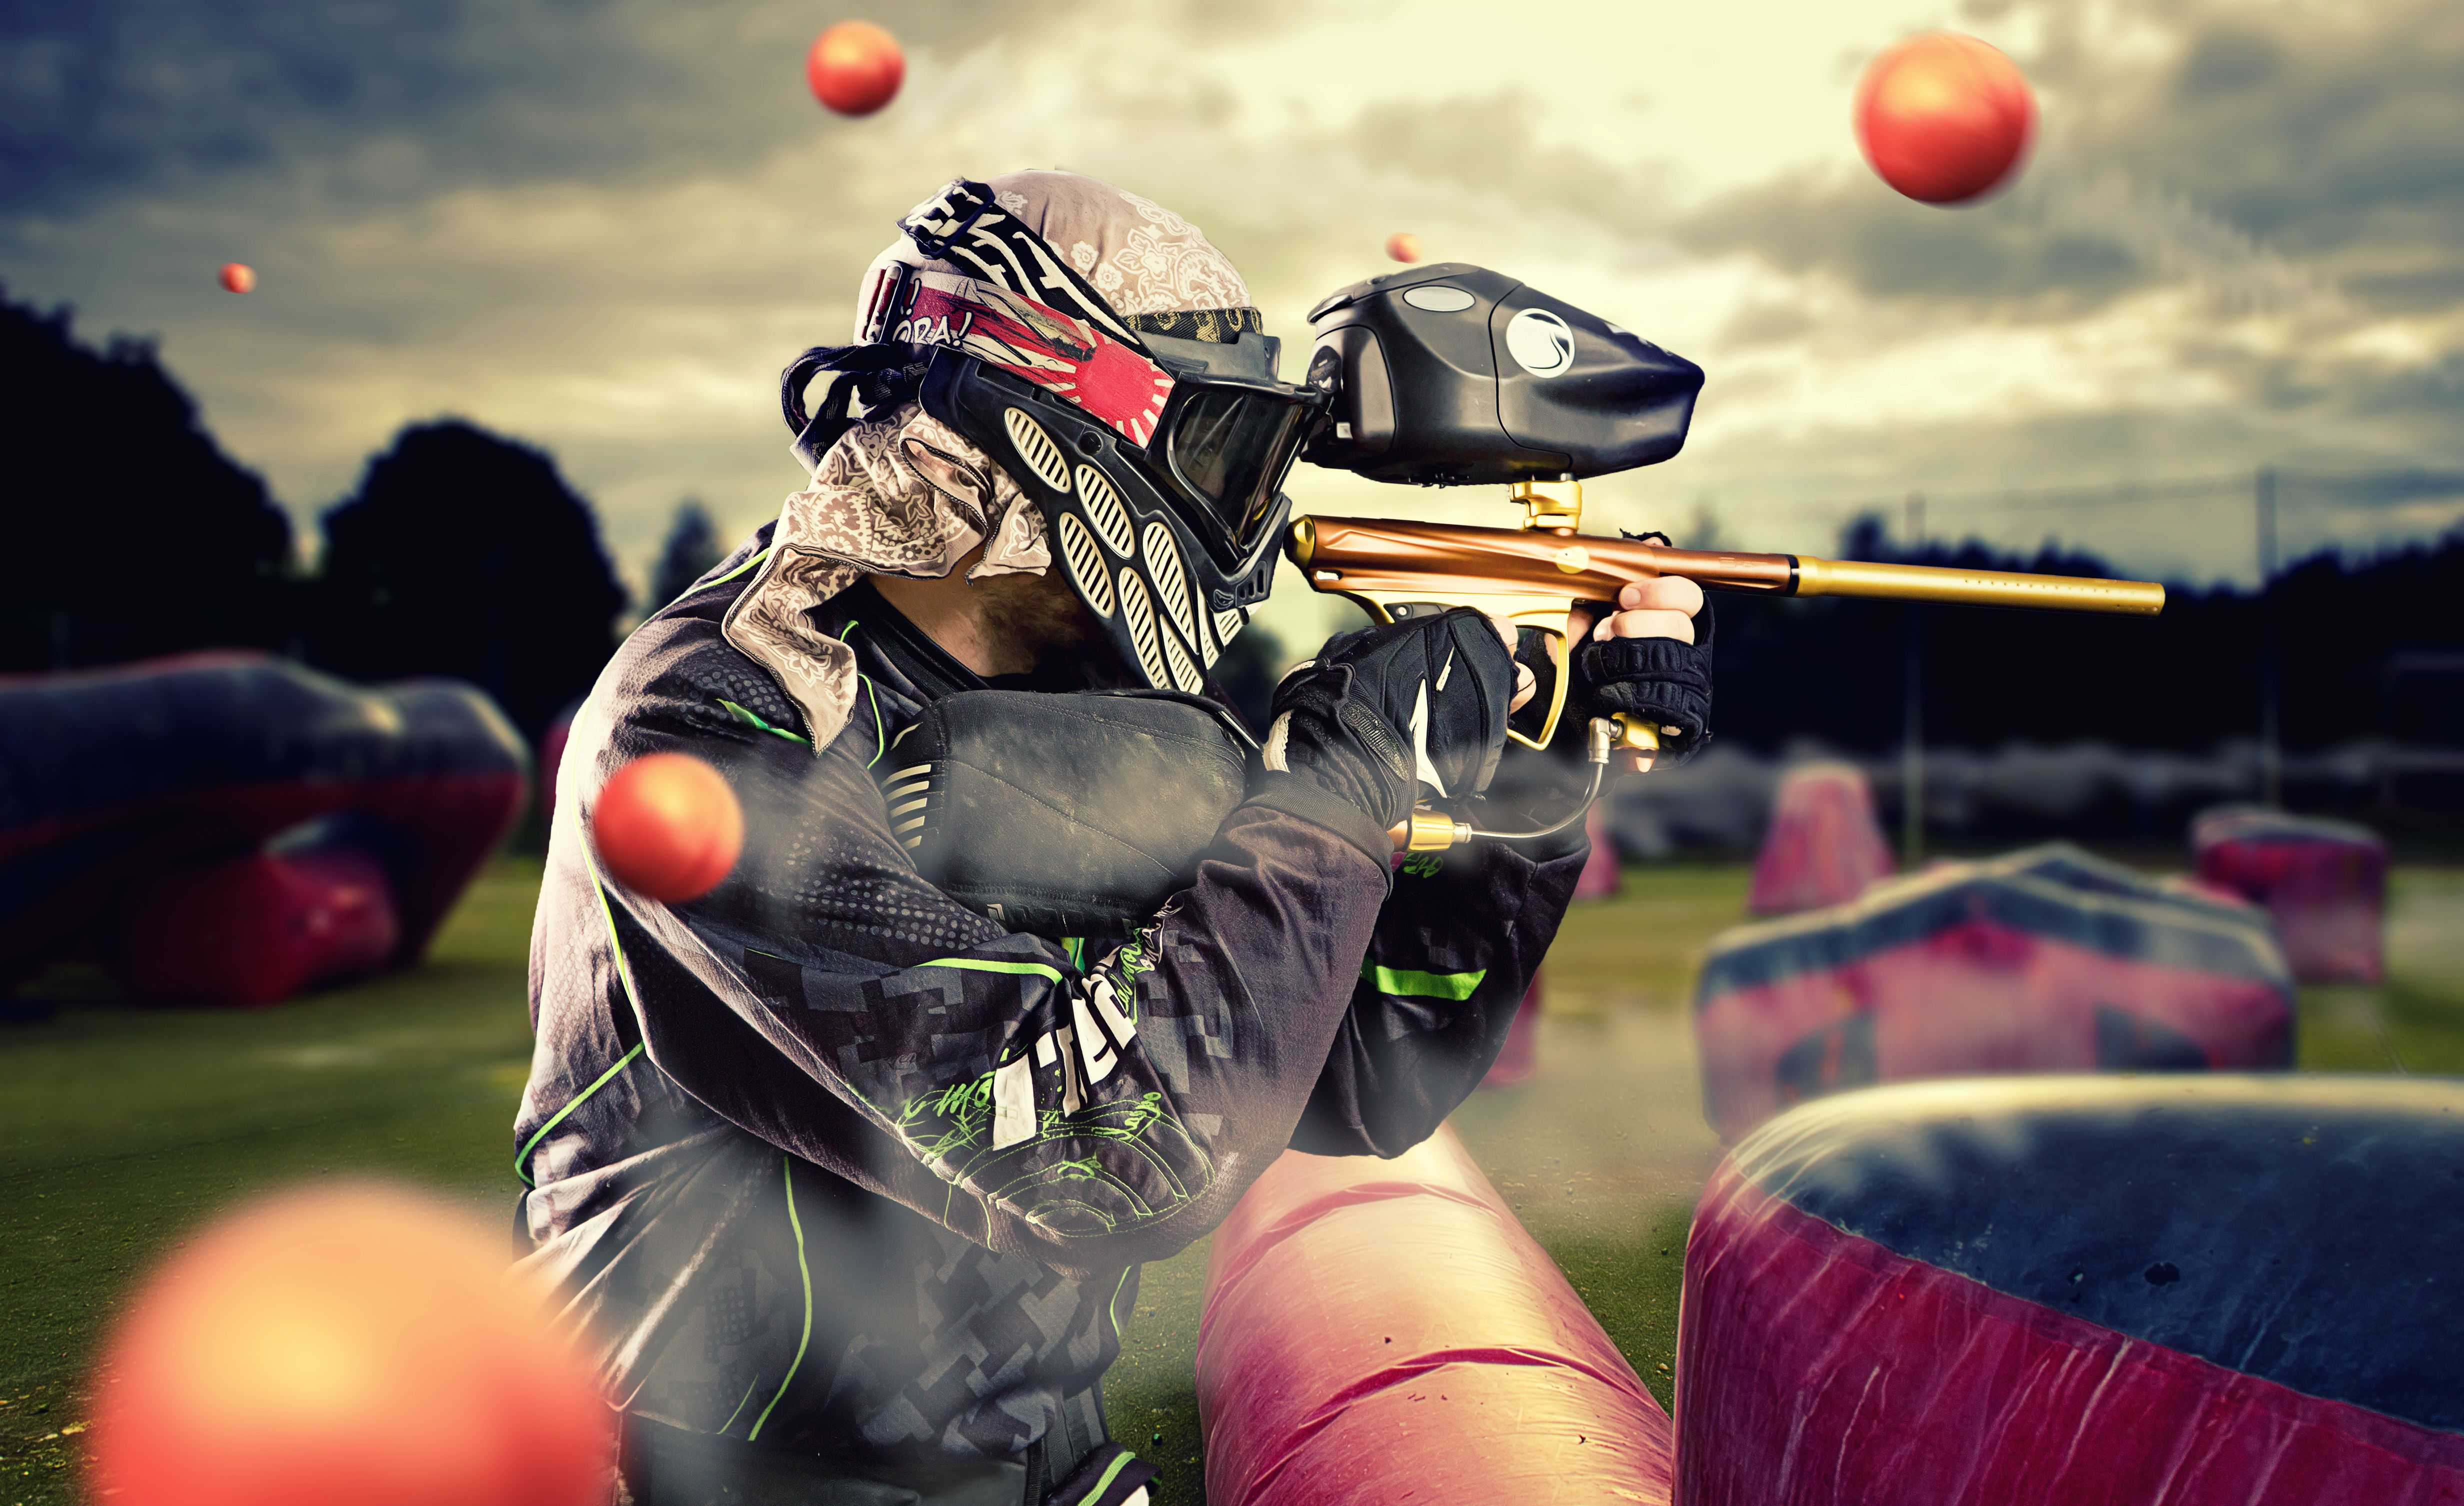 PAintball Picture